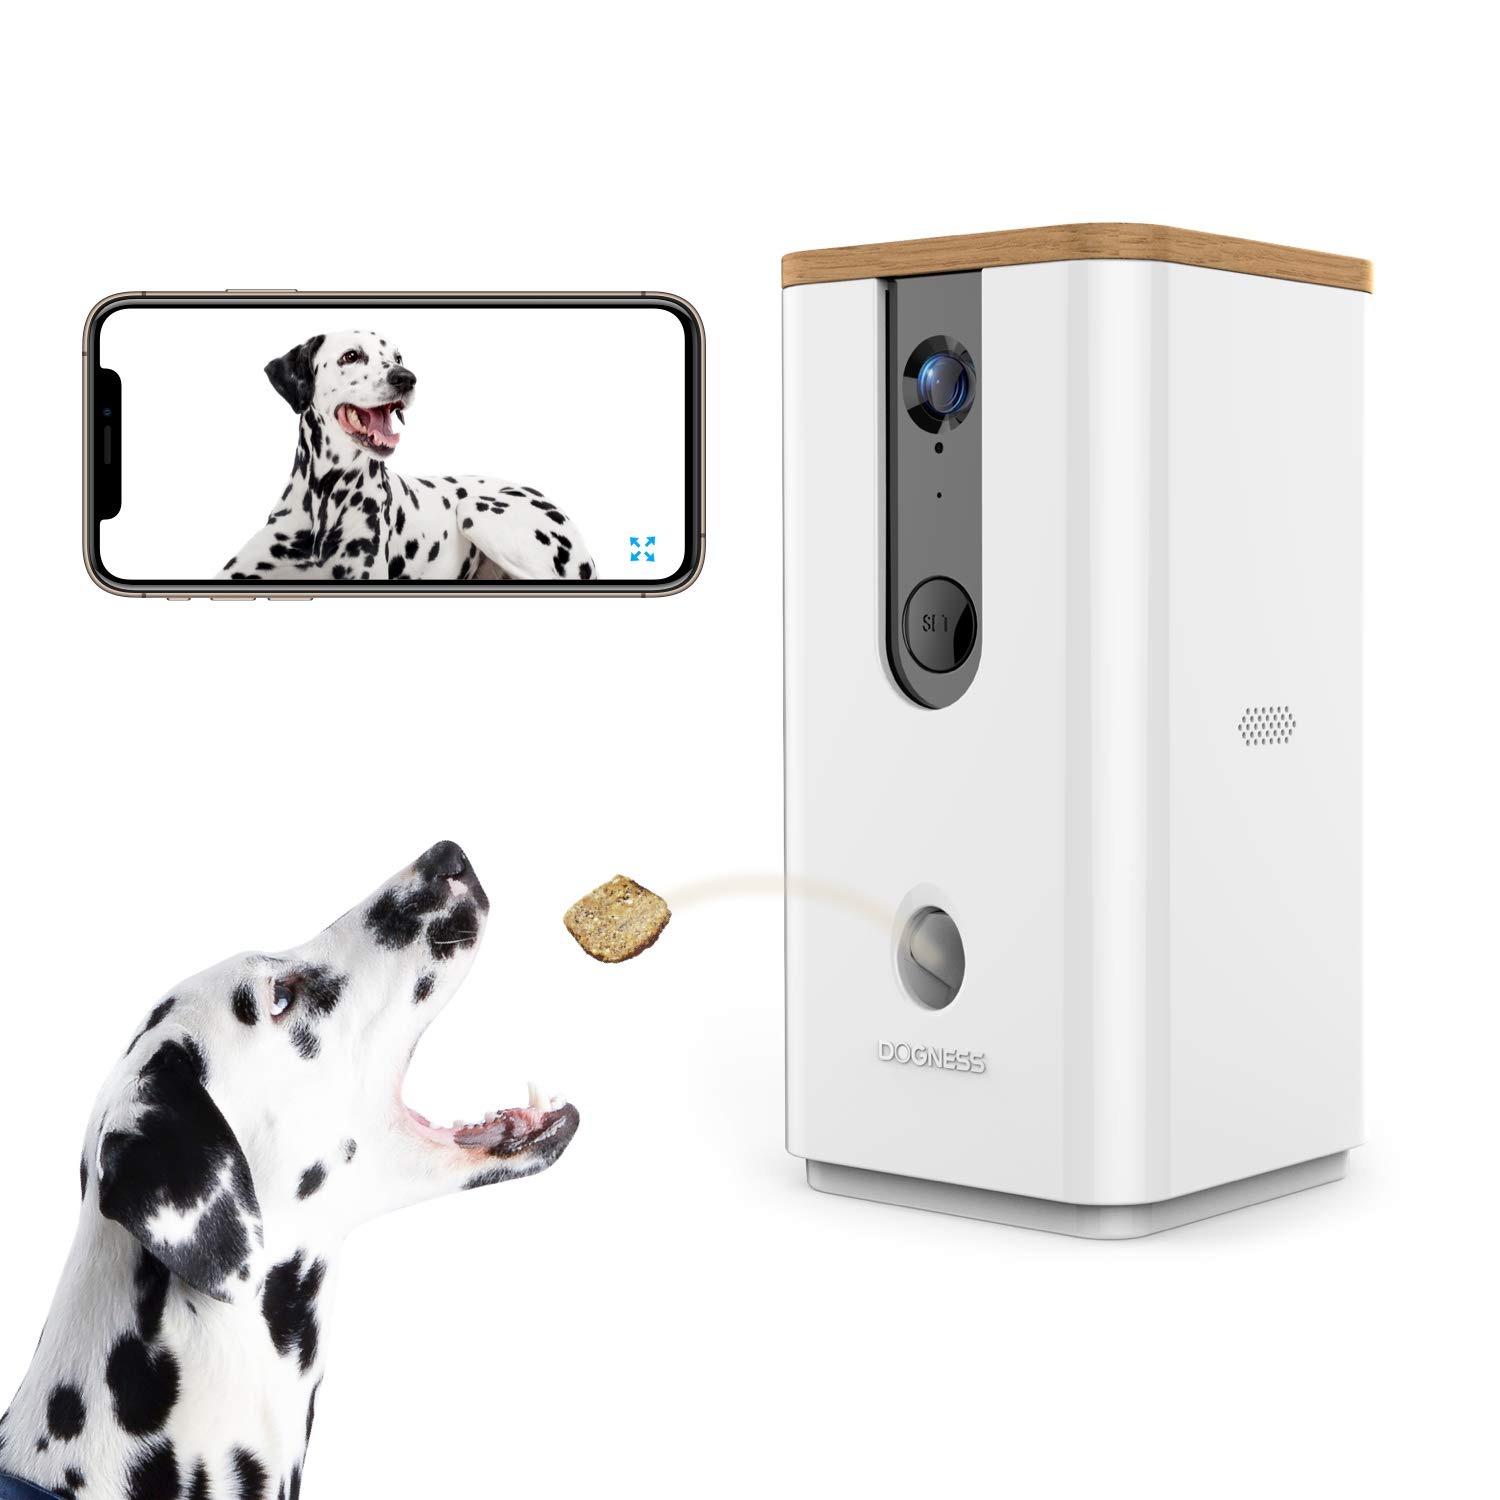 Vbroad Smart Pet Camera Treat Dispenser, WiFi Remote Camera Monitor 720P HD Night Vision Video with 2-Way Audio Designed for Dogs and Cats, Home Safety Pet Monitor (Android/iOS)